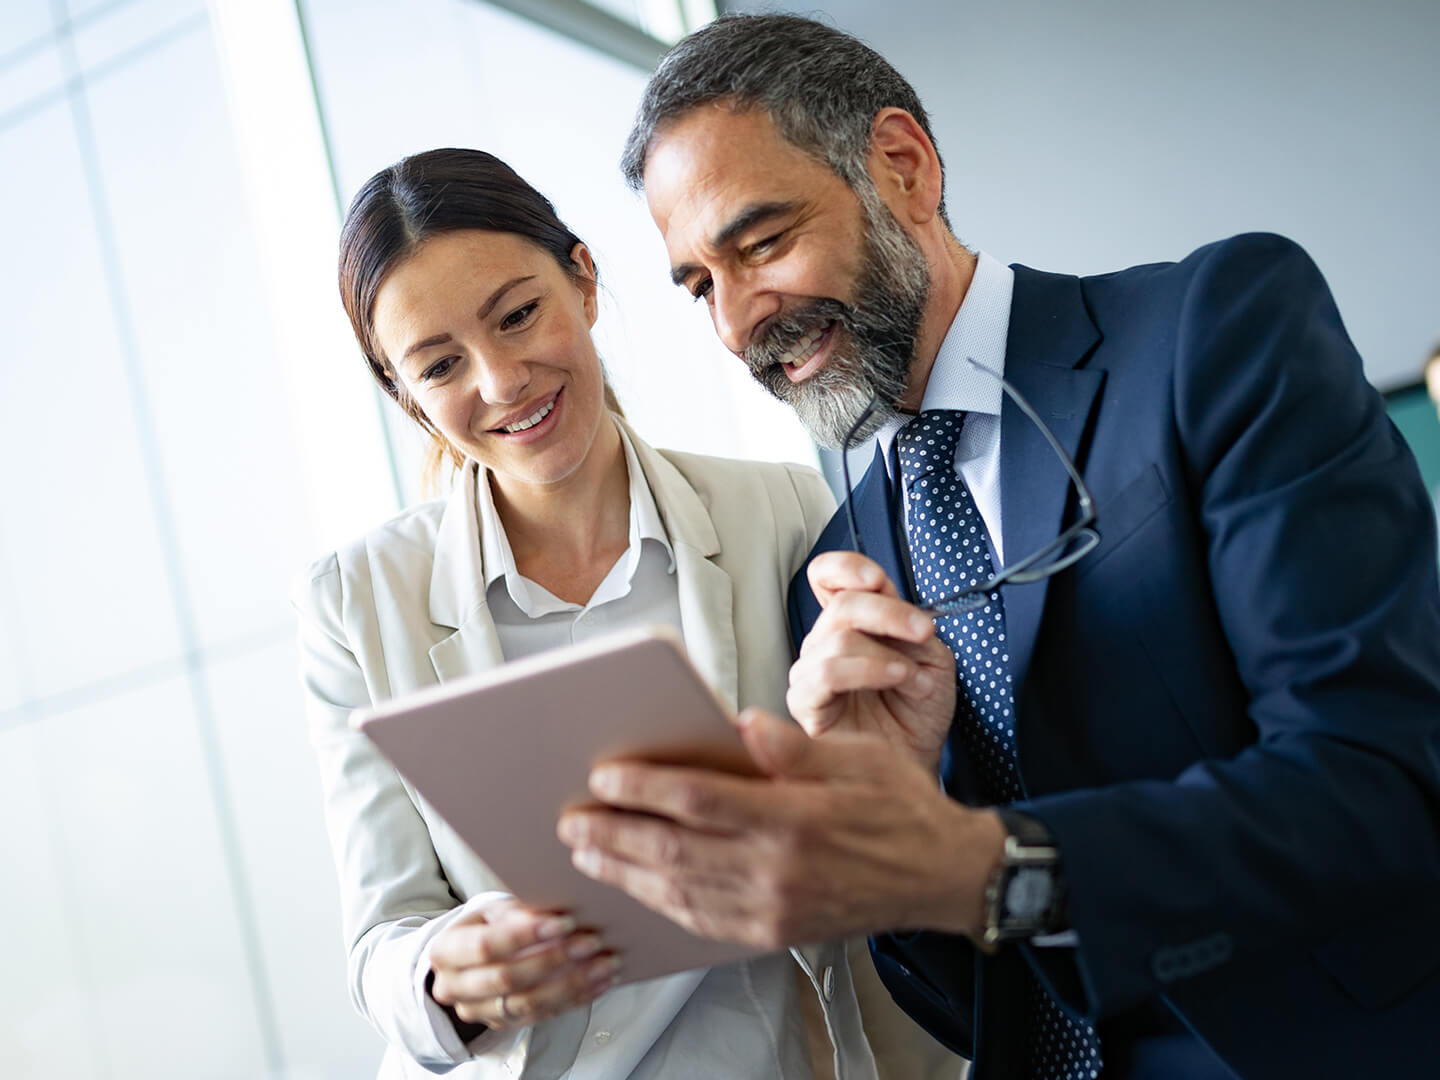 business woman and man looking at tablet in office